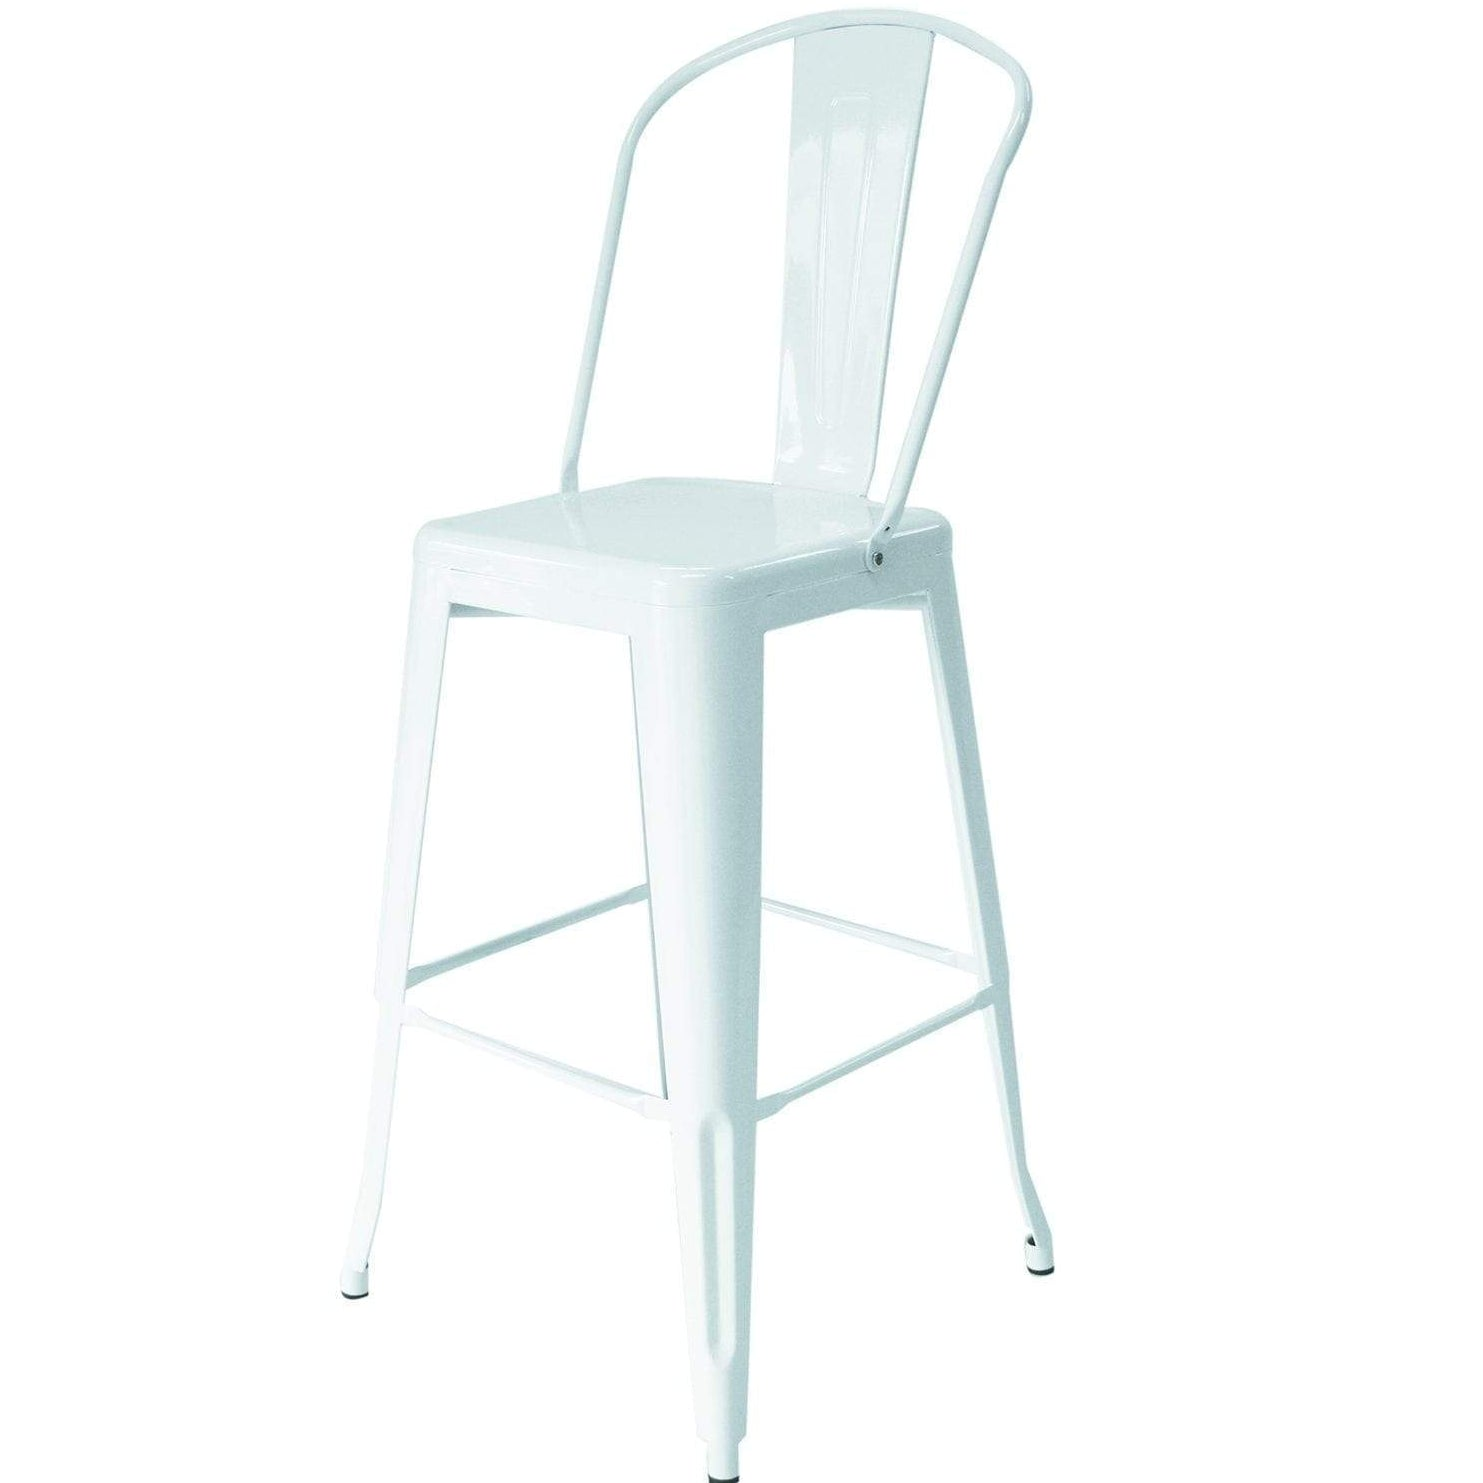 Astonishing Furniture Hire Tolix High Back Stool White Designed For Hire Gmtry Best Dining Table And Chair Ideas Images Gmtryco